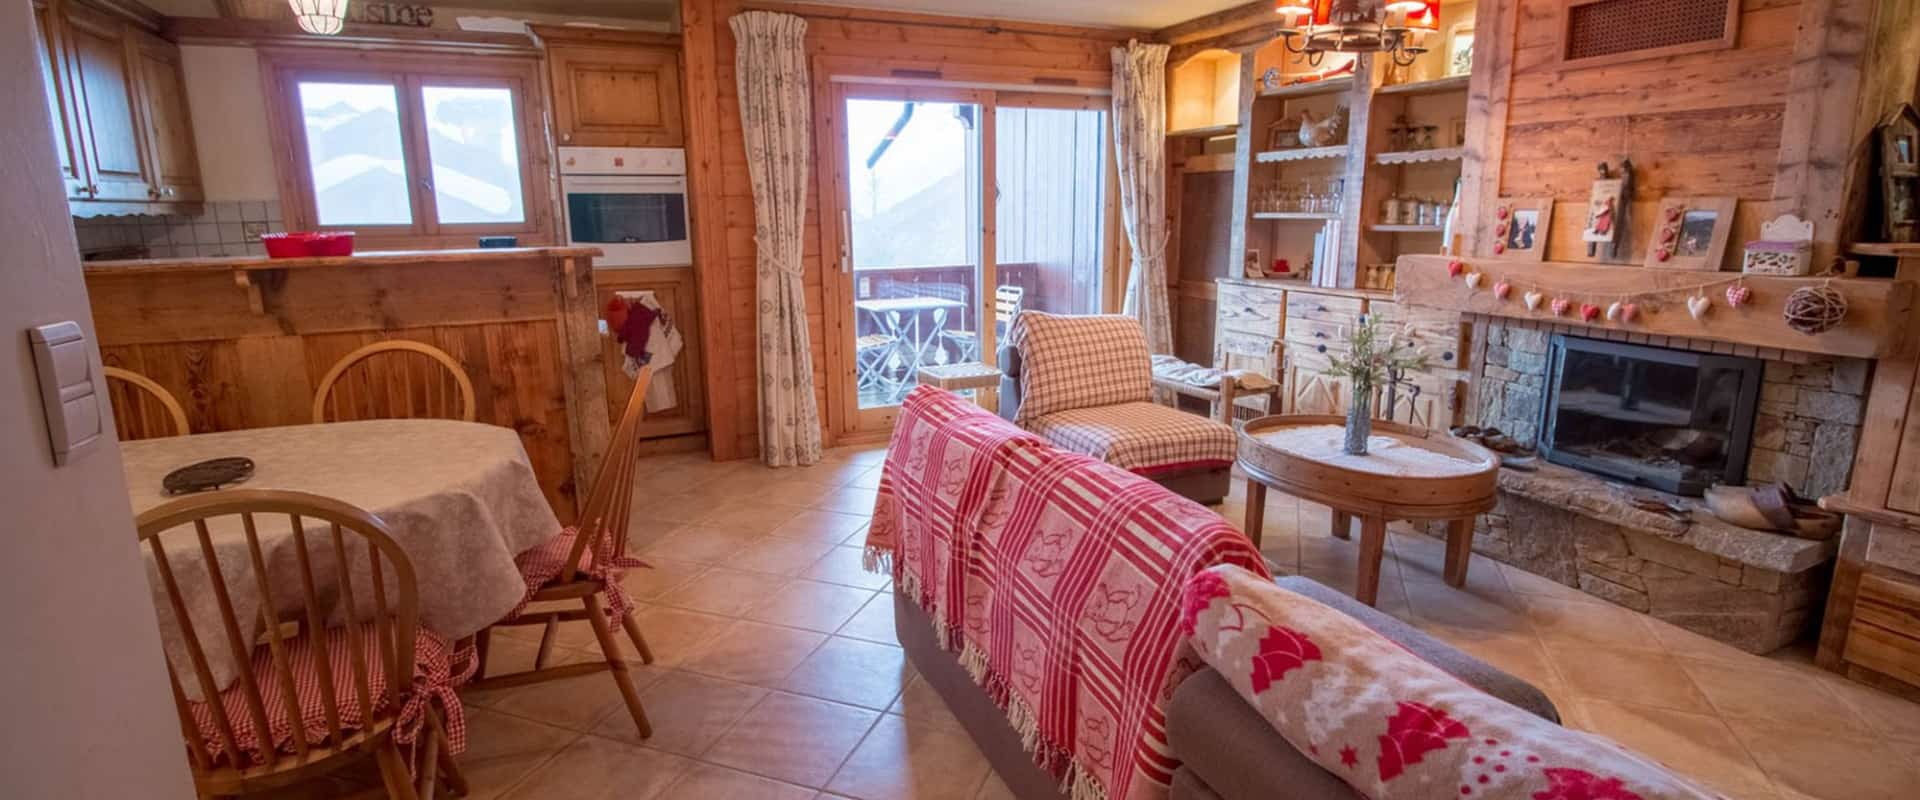 Ski Apartment for Sale, Méribel Village, France • Alpine ...